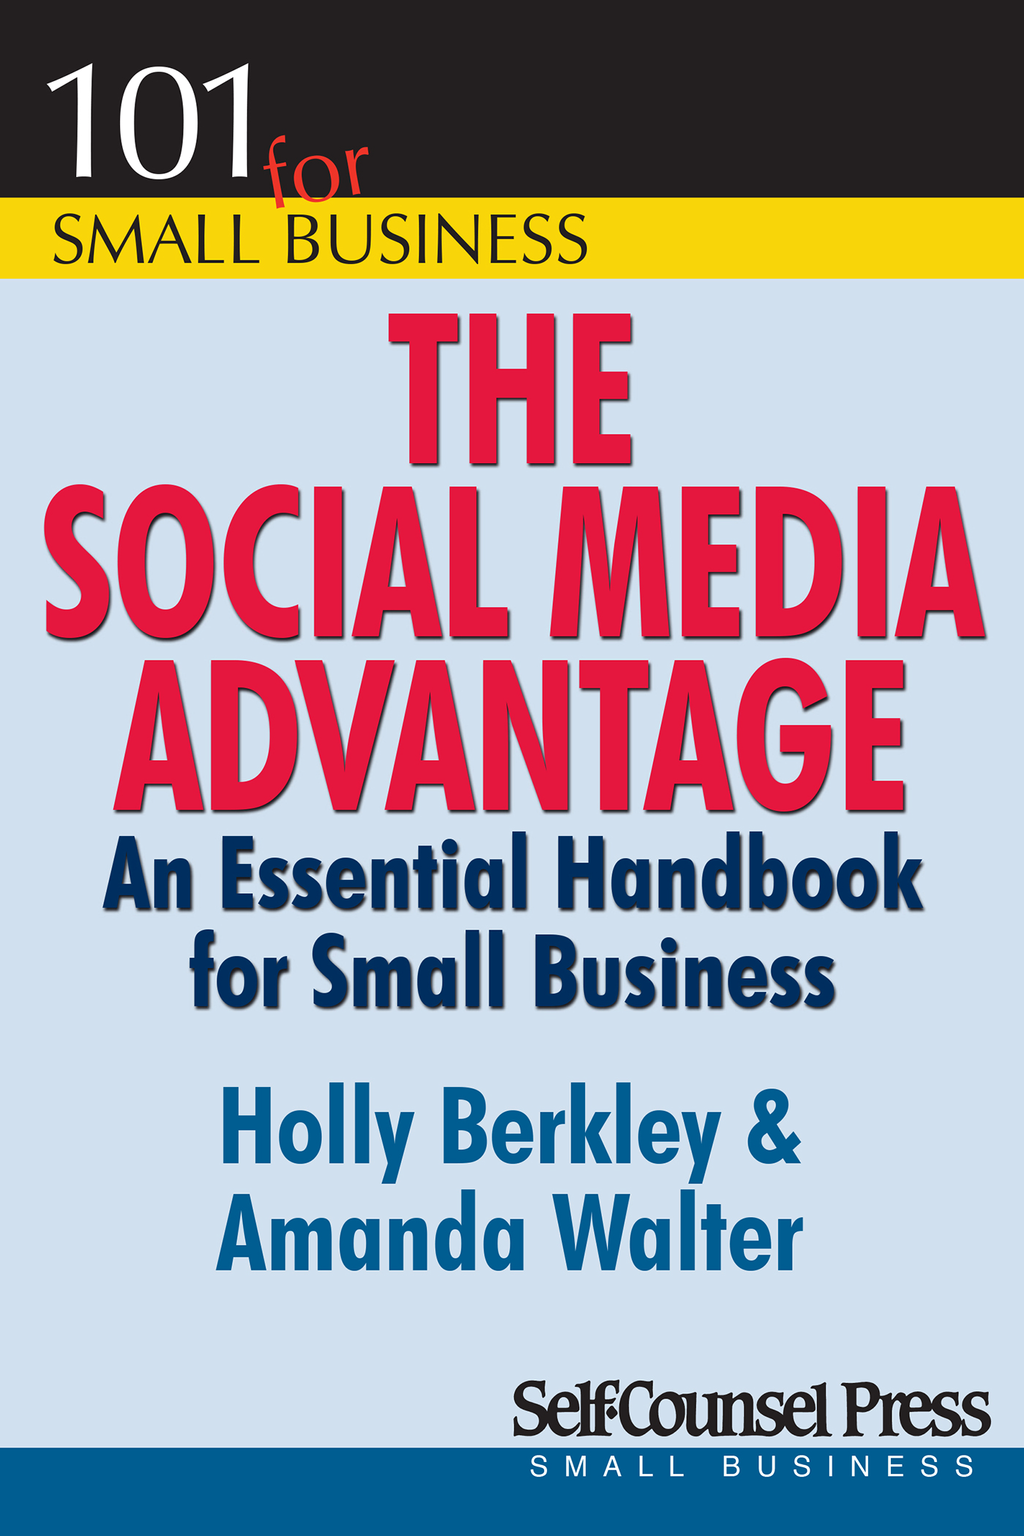 The Social Media Advantage